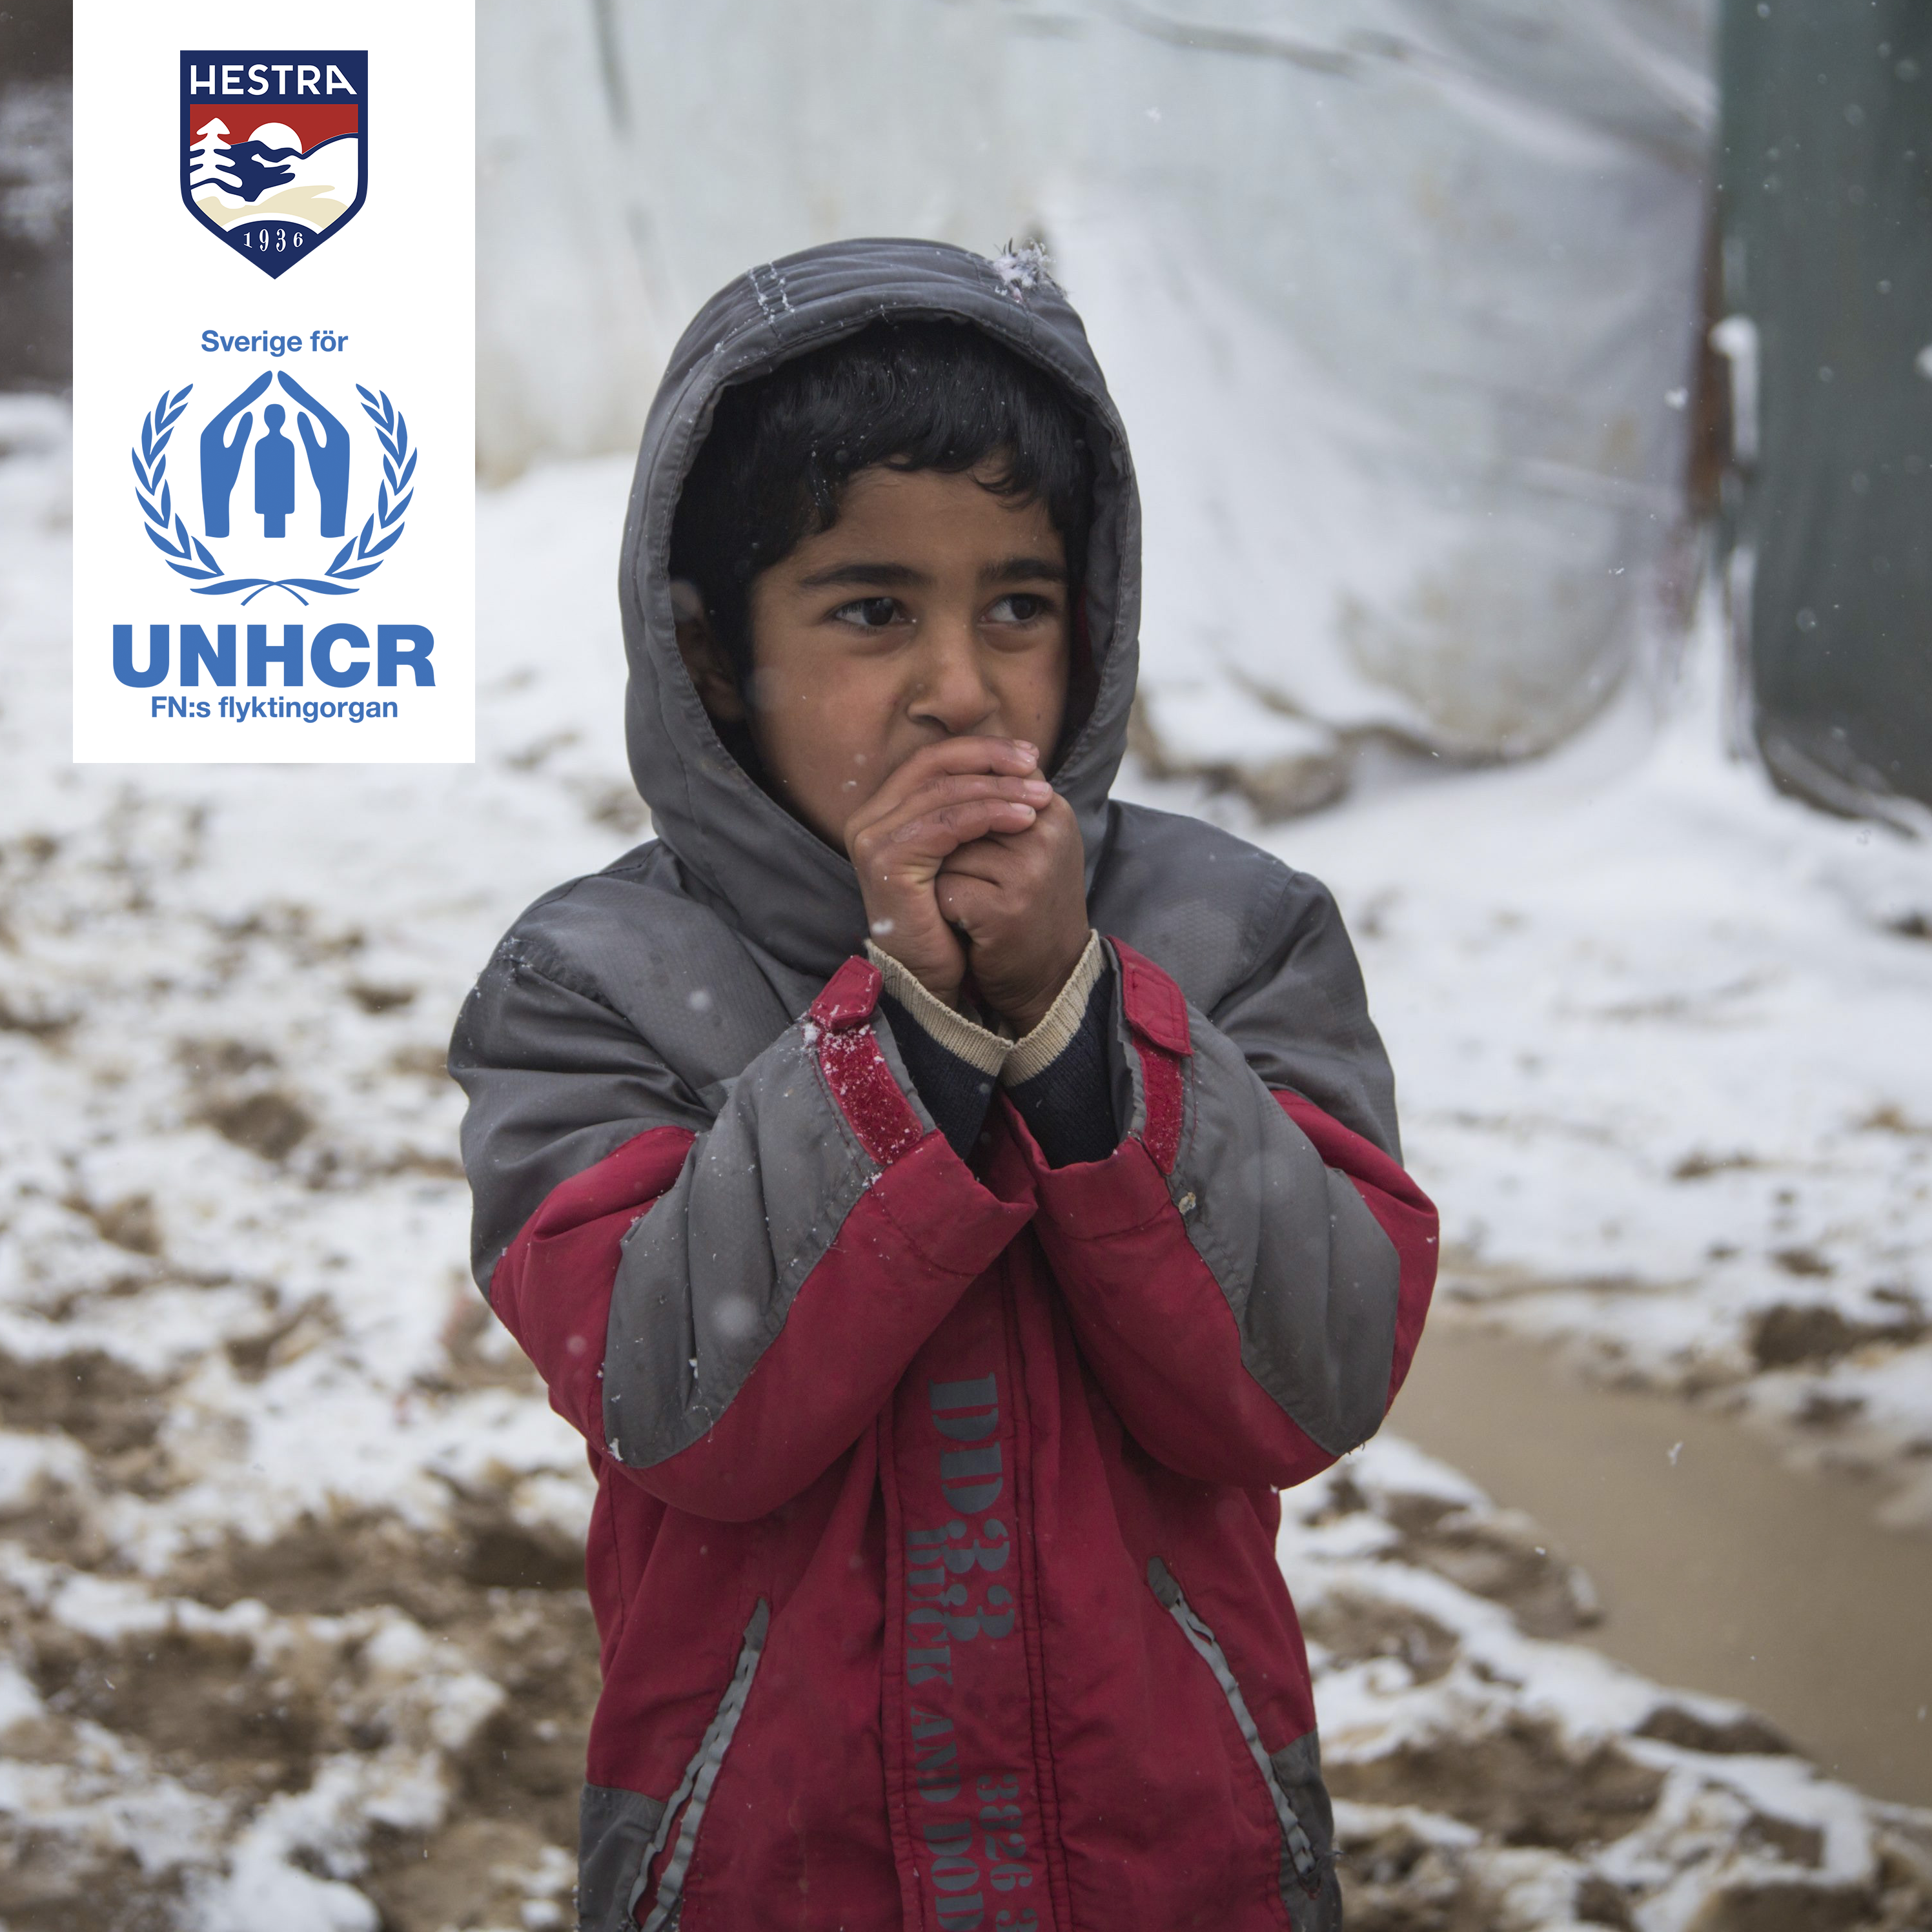 Hestra for UNHCR.